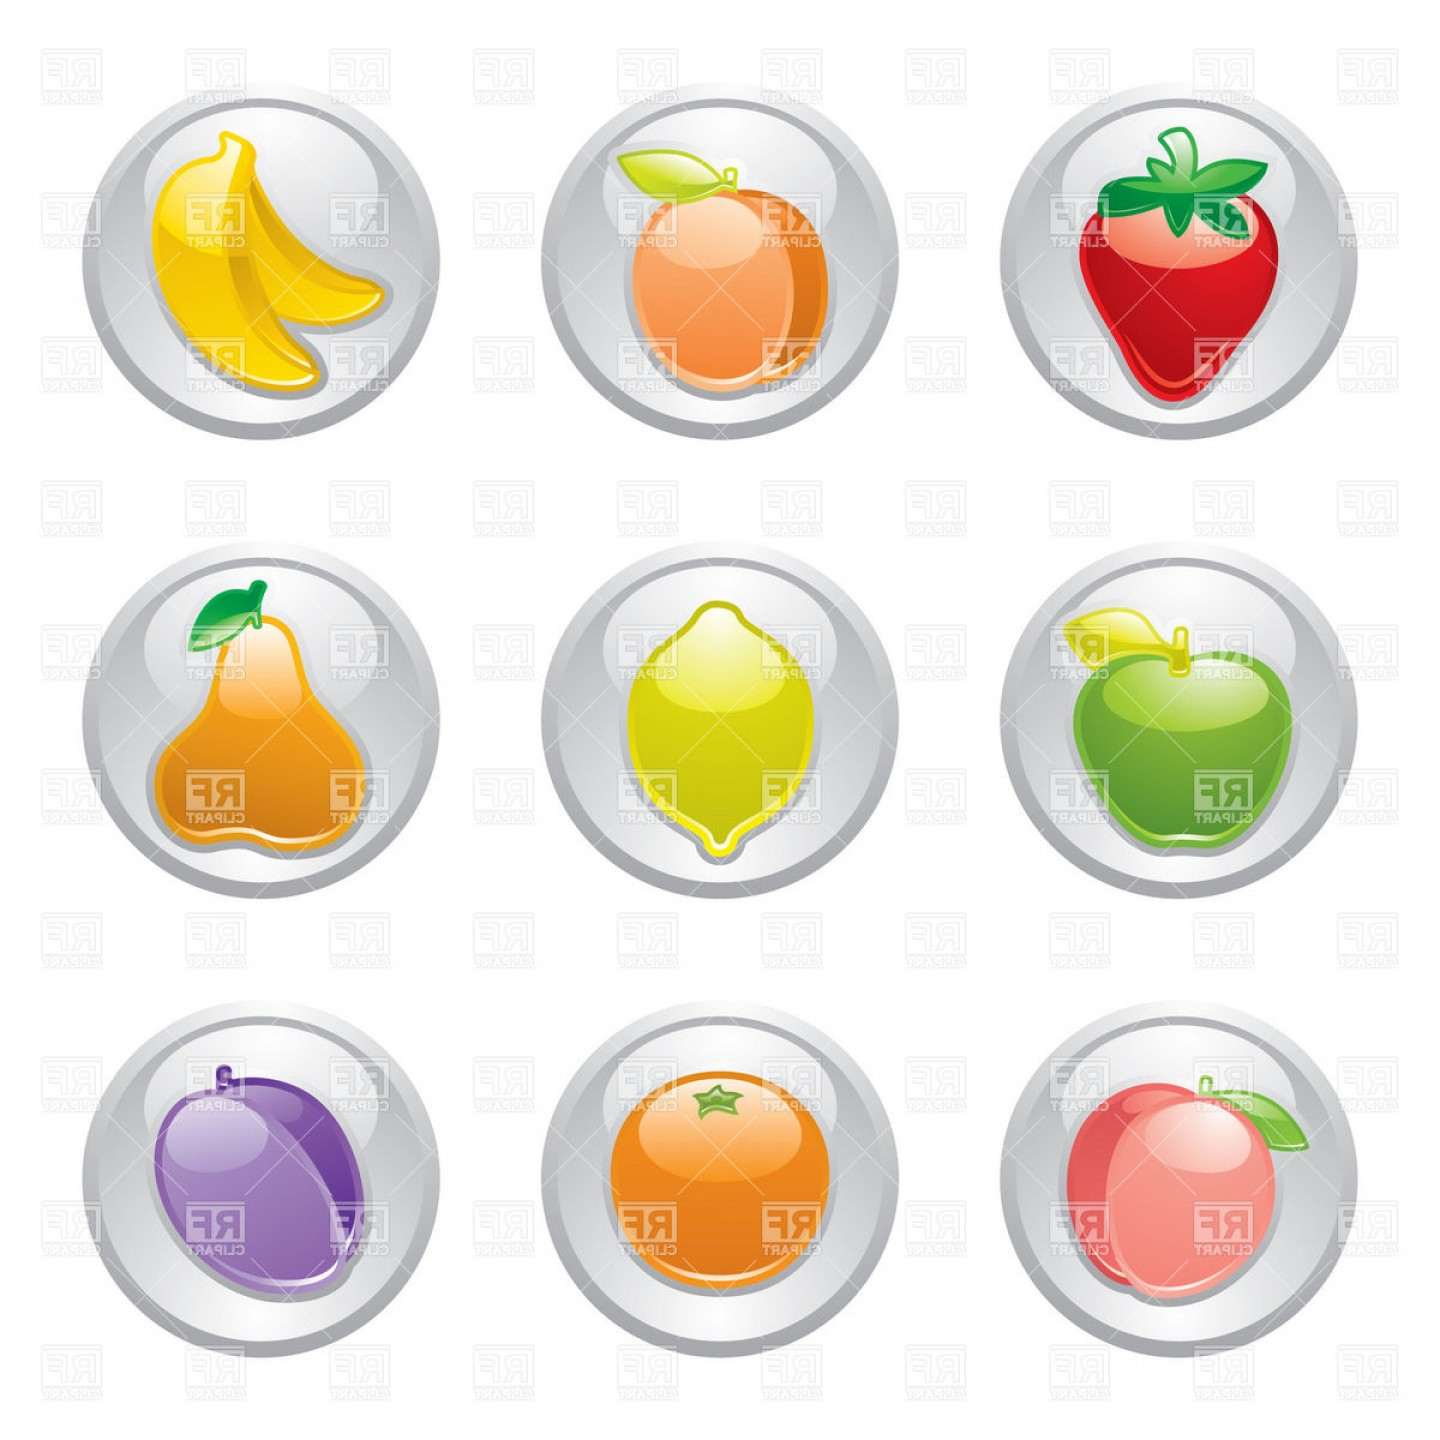 Buttons Vector Art: Fruit Icons On Gray Buttons Vector Clipart